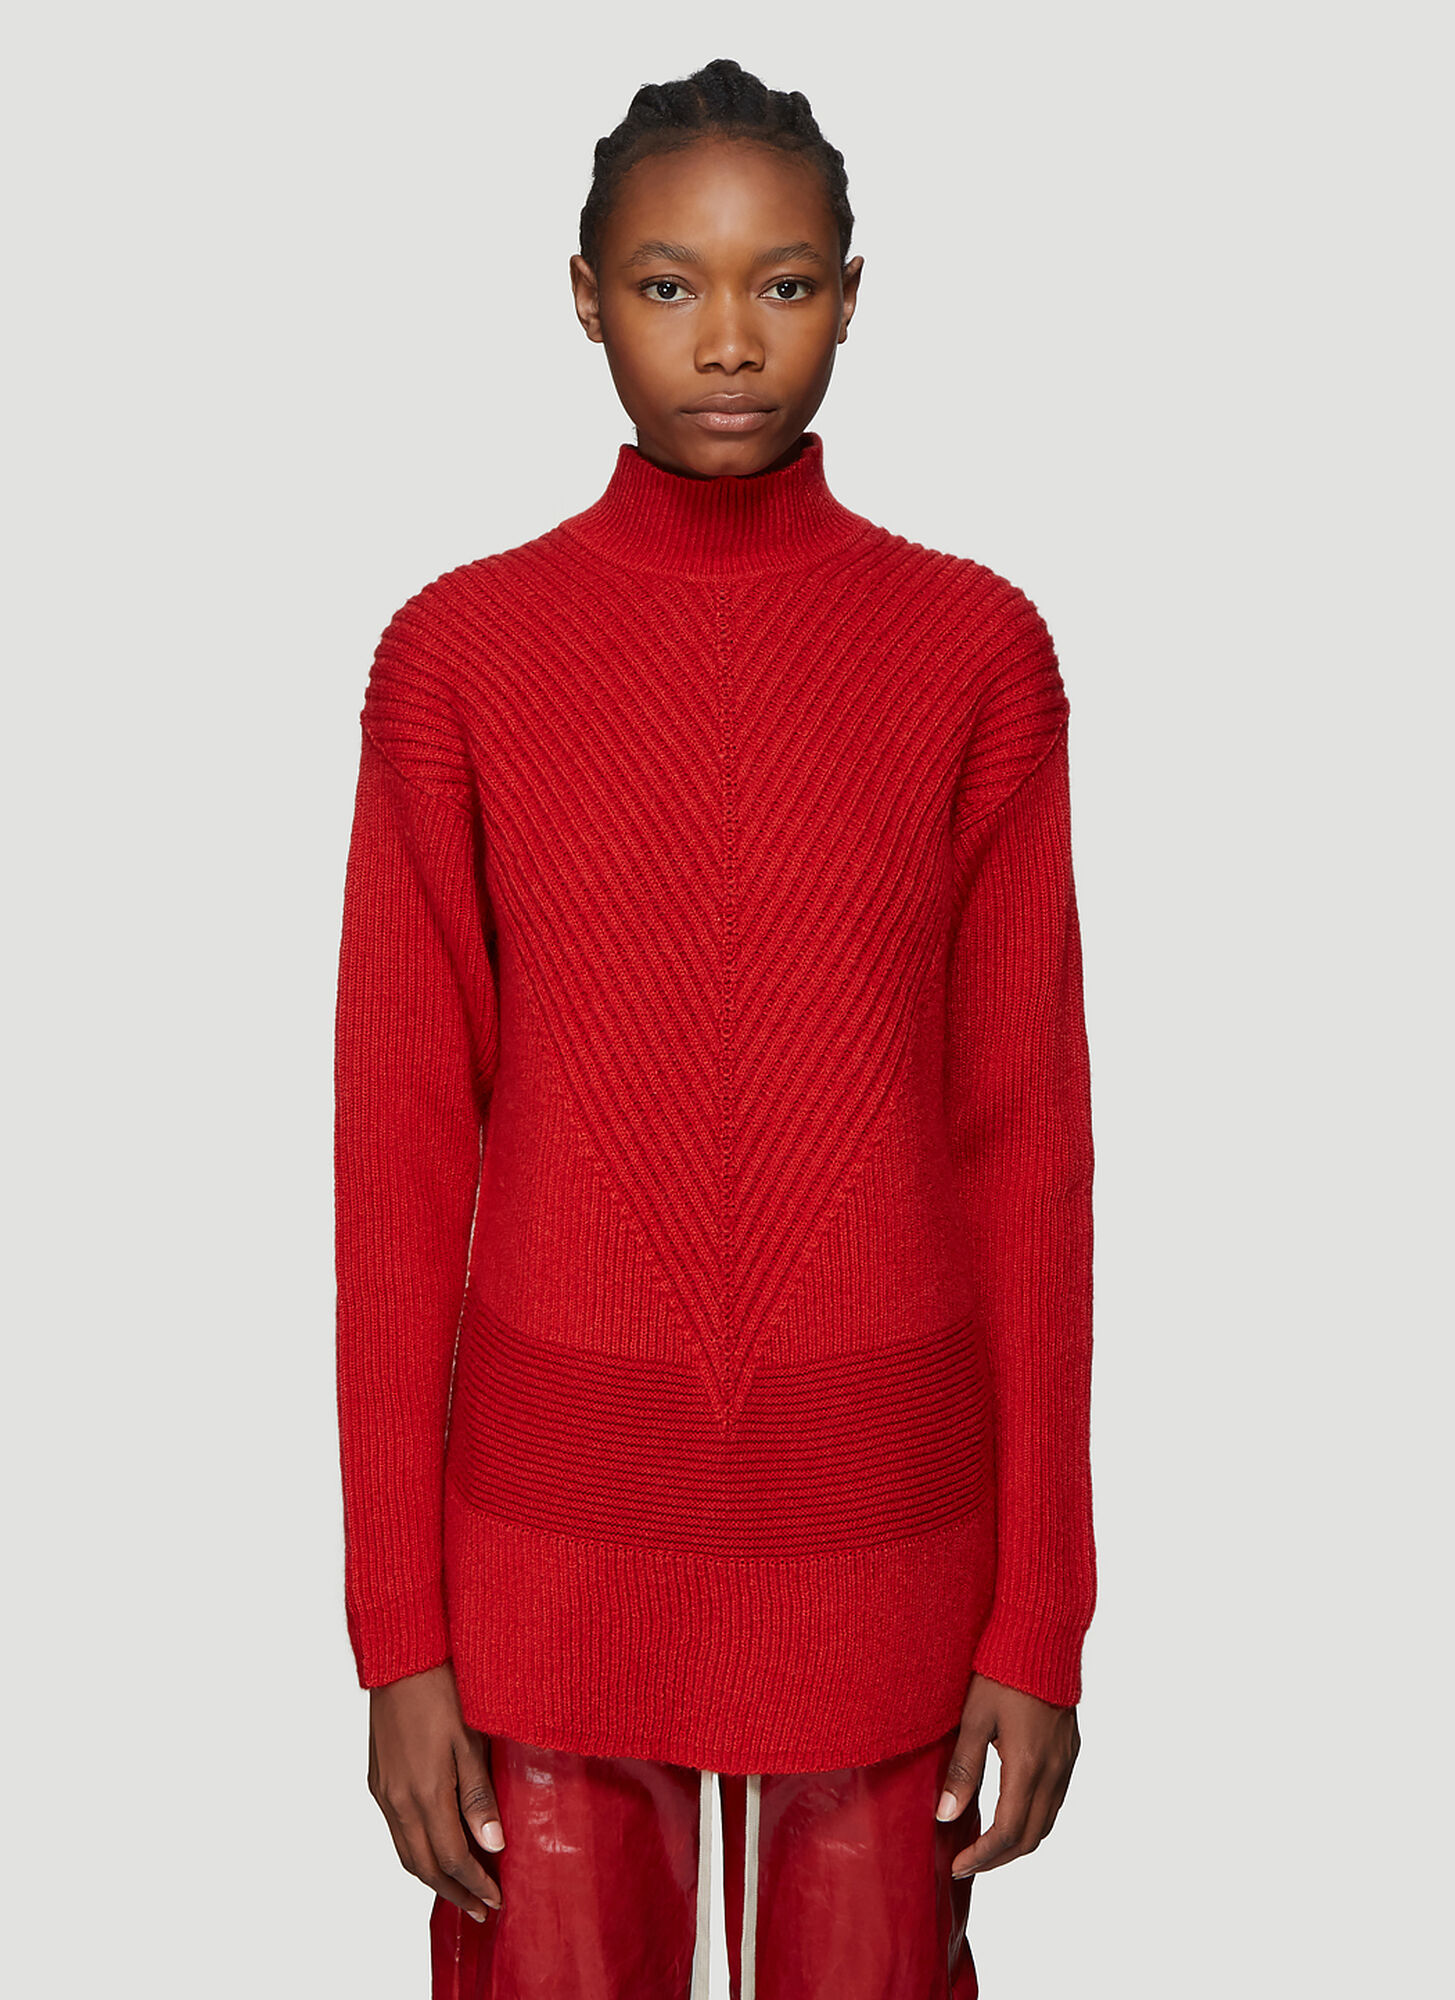 Rick Owens Ribbed Knit Turtleneck Sweater in Red